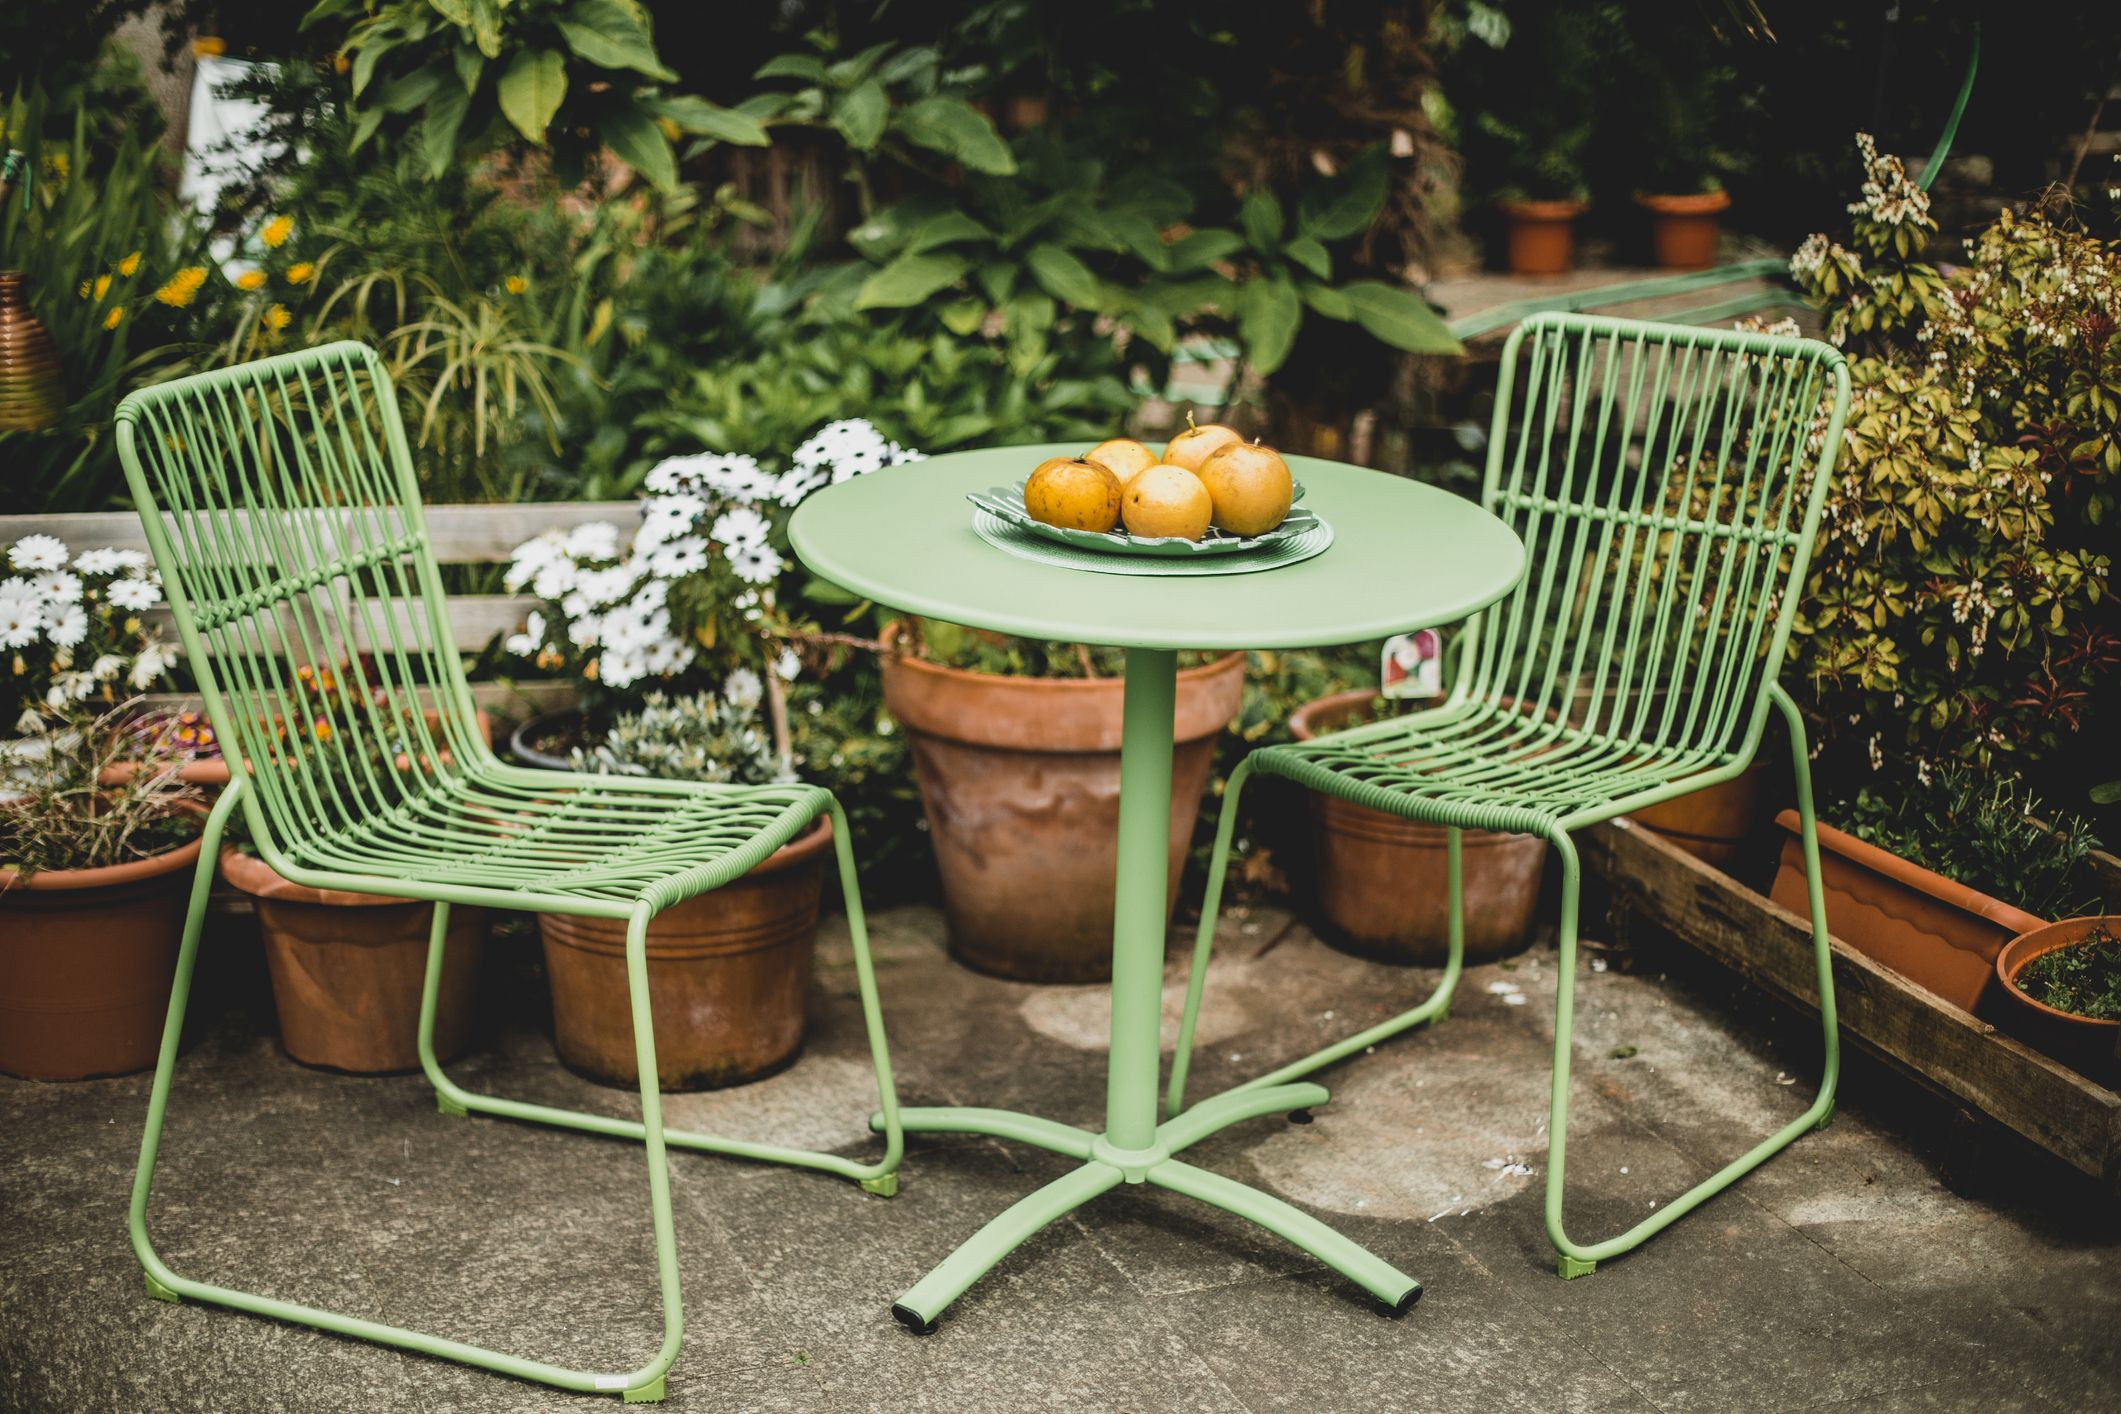 9 Garden Furniture Sets: Our Top Picks For 9